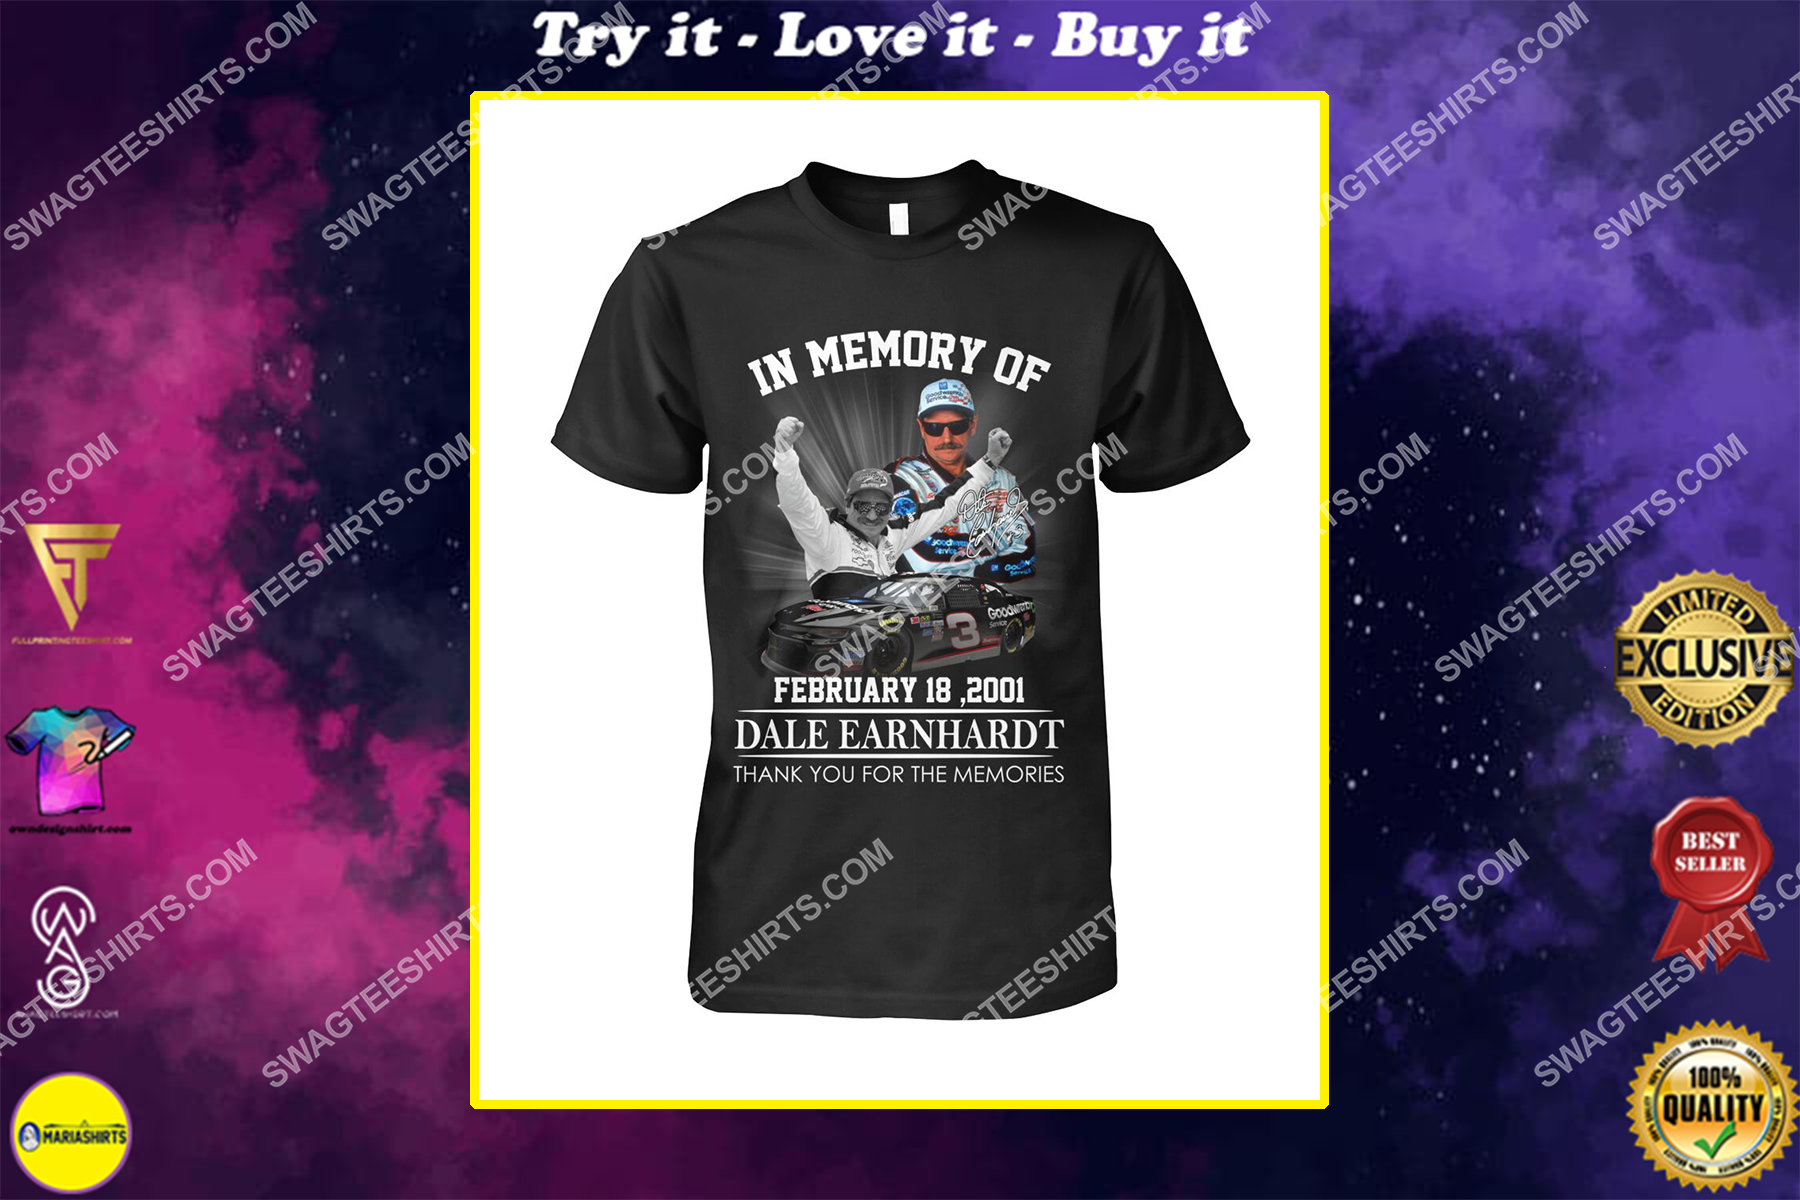 in memory of dale earnhardt thank you for memories shirt